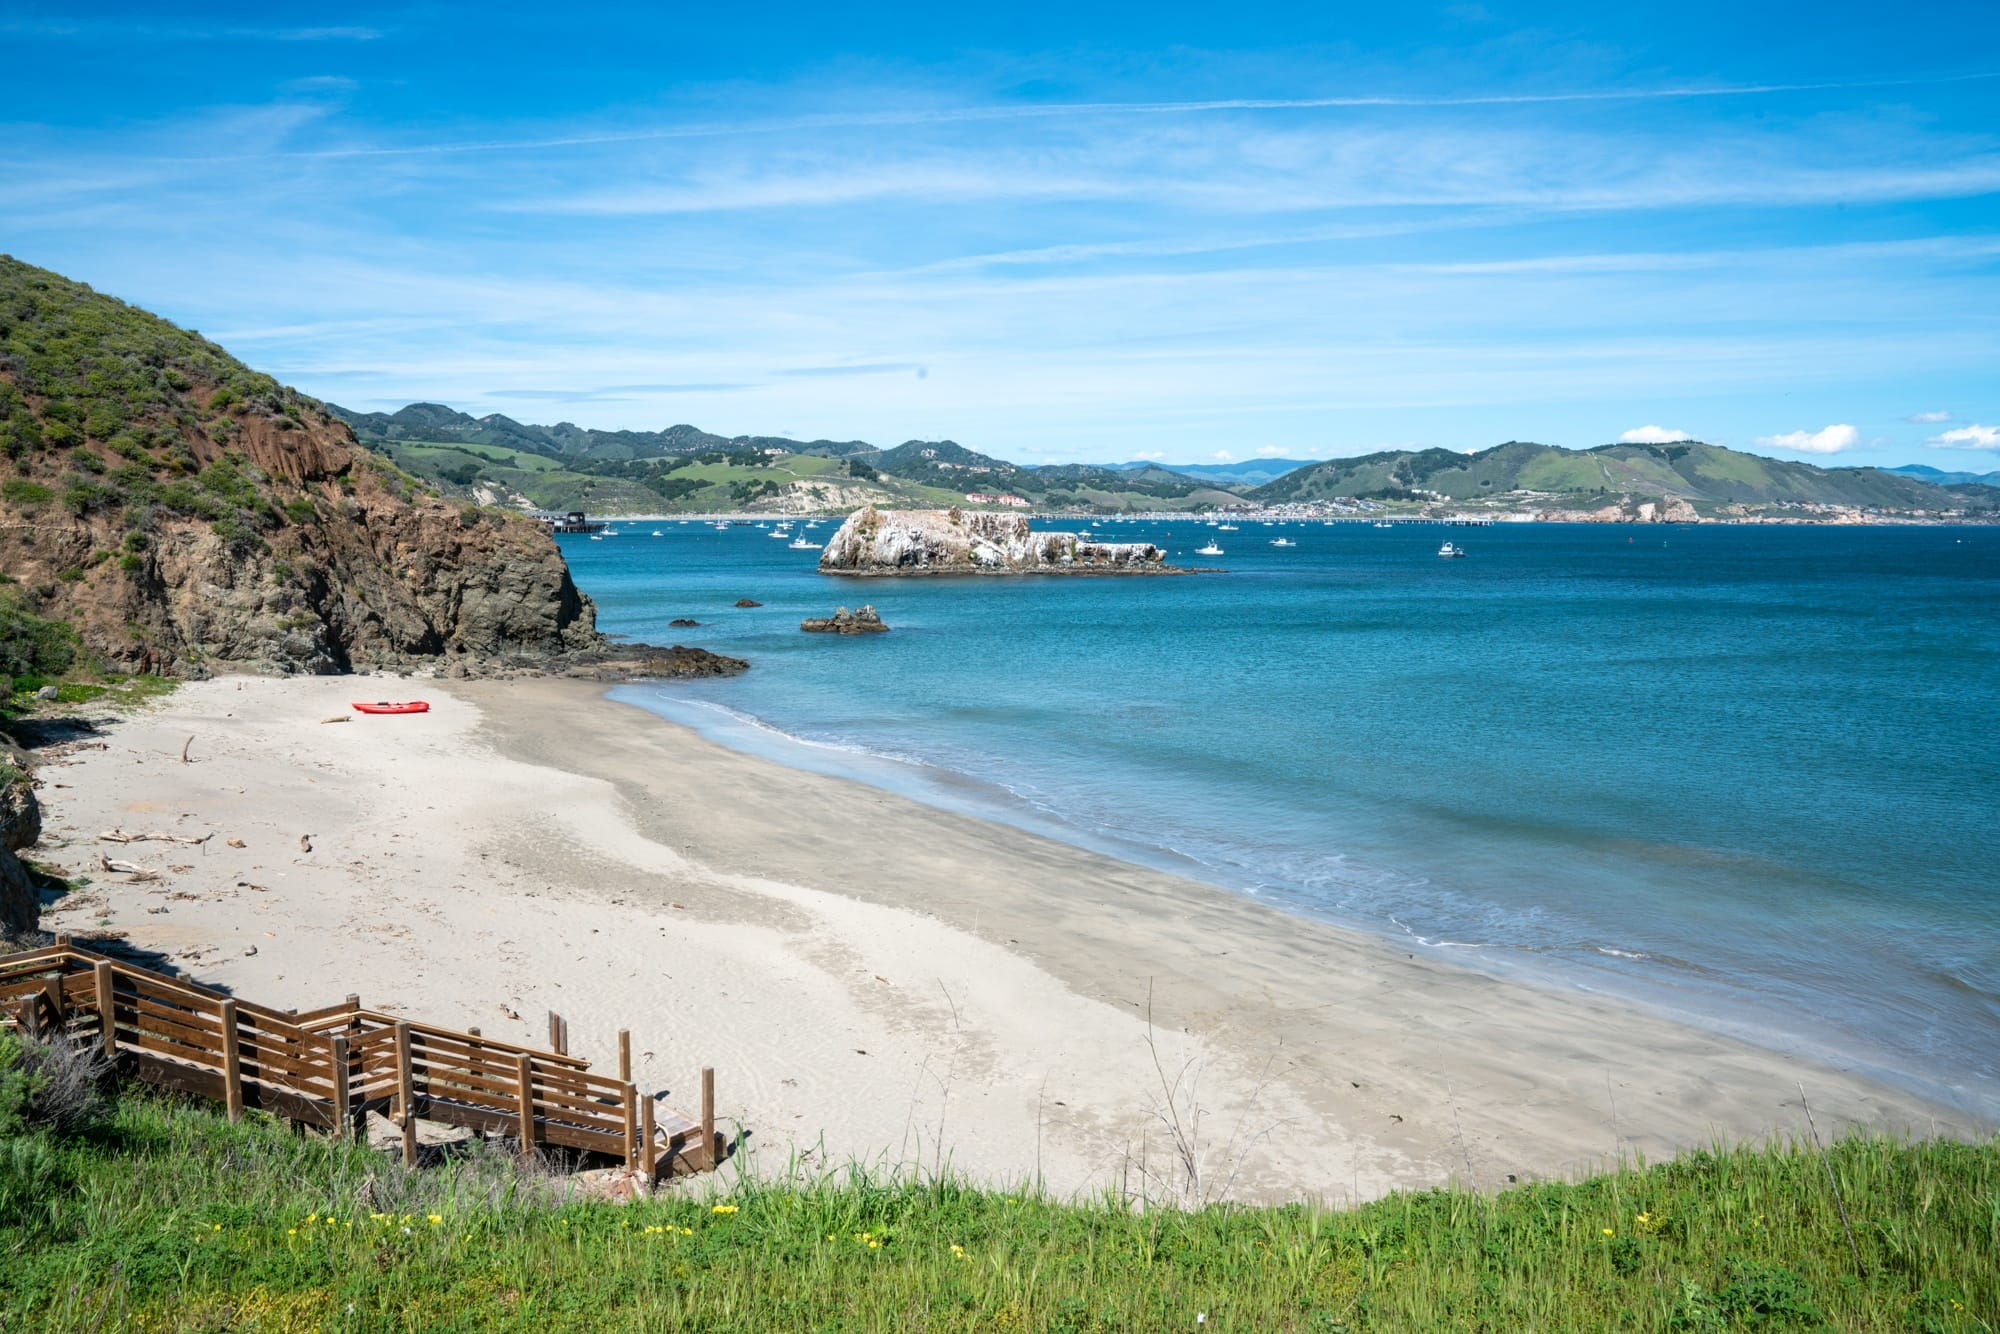 Avila Beach Kayaking // A 6 day california coast road trip itinerary that combines outdoor adventure travel and local California beach town culture.